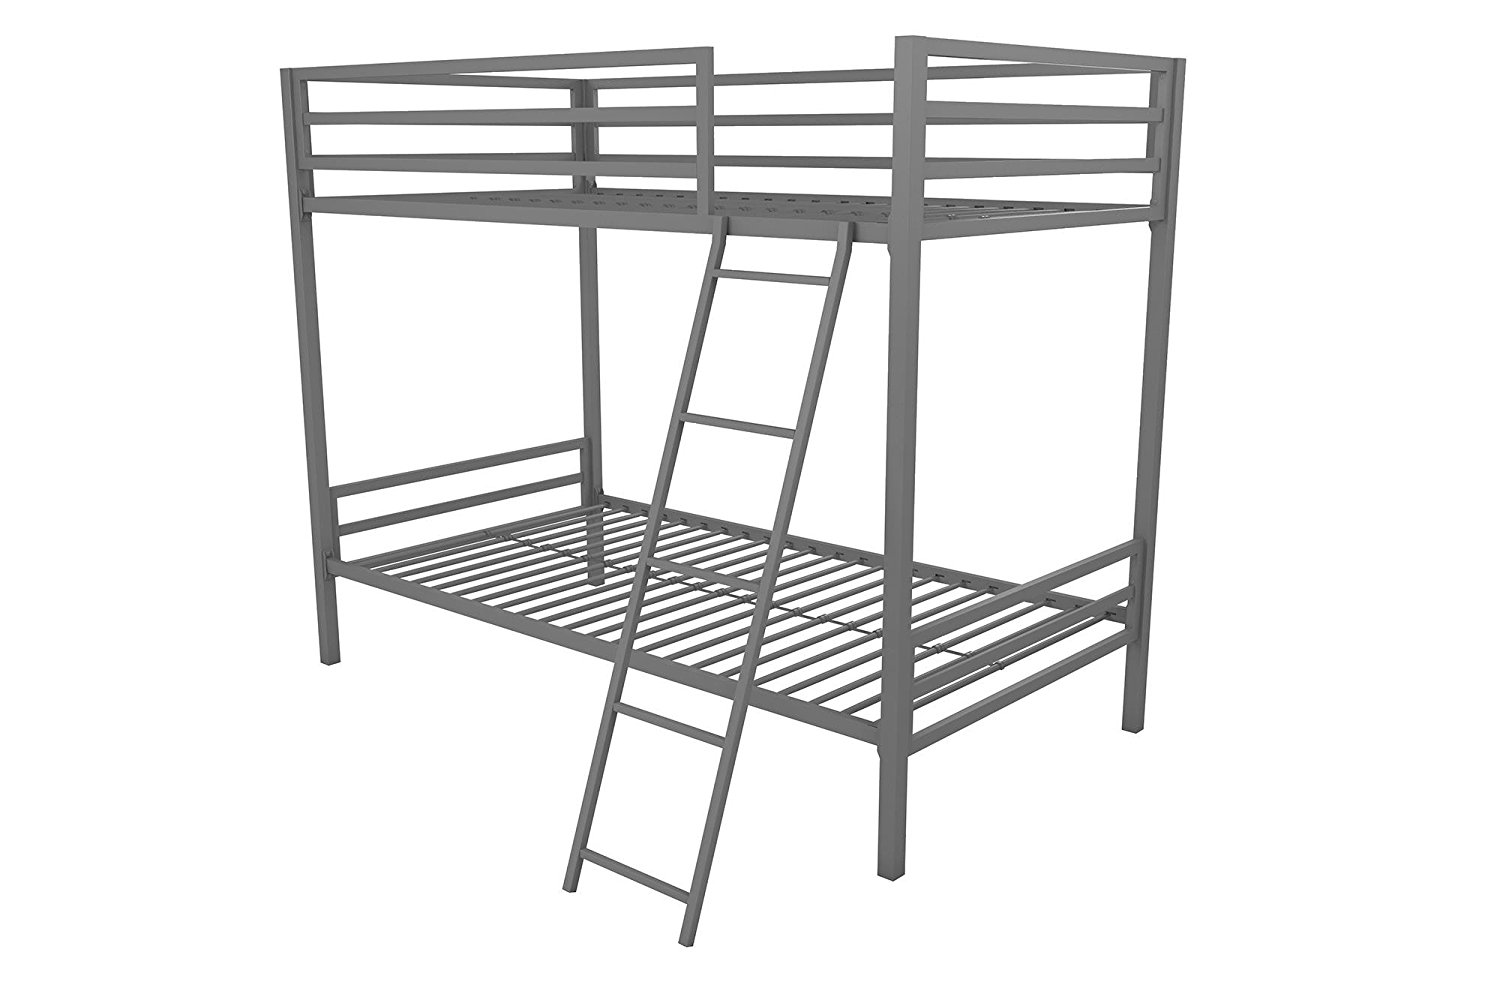 Novogratz Maxwell Twin/Twin Metal Bunk Bed, Sturdy Metal Frame with Ladder and Safety Rails, Grey